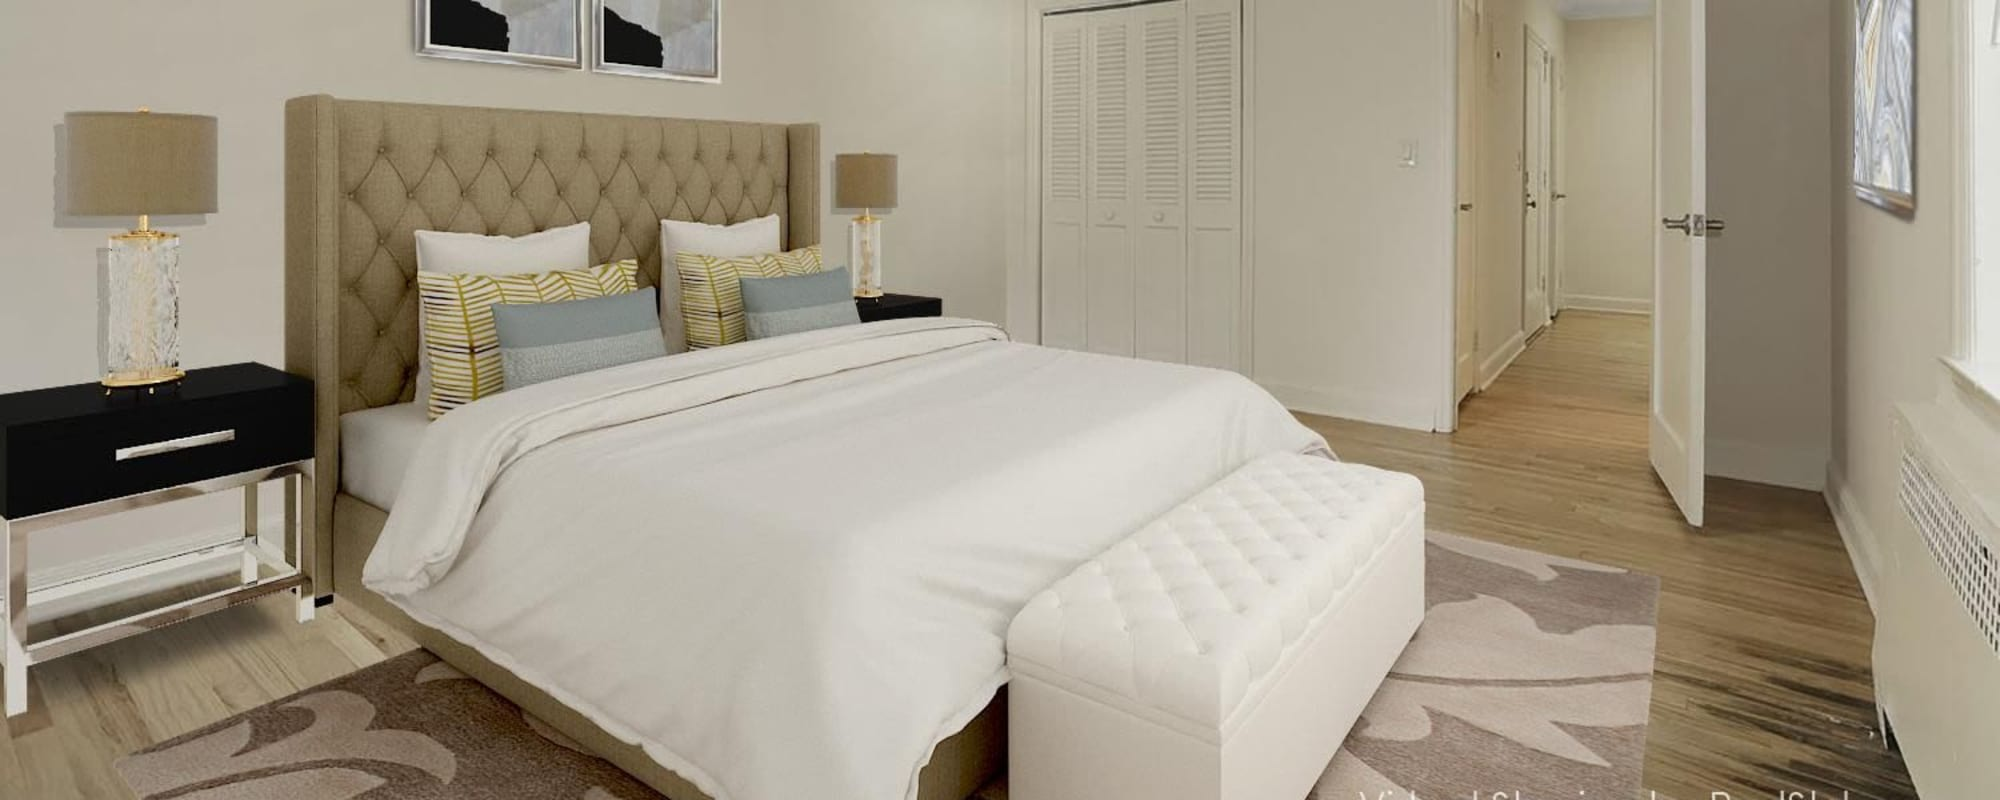 Amenities at Mayflower Apartments in Ridgewood, New Jersey